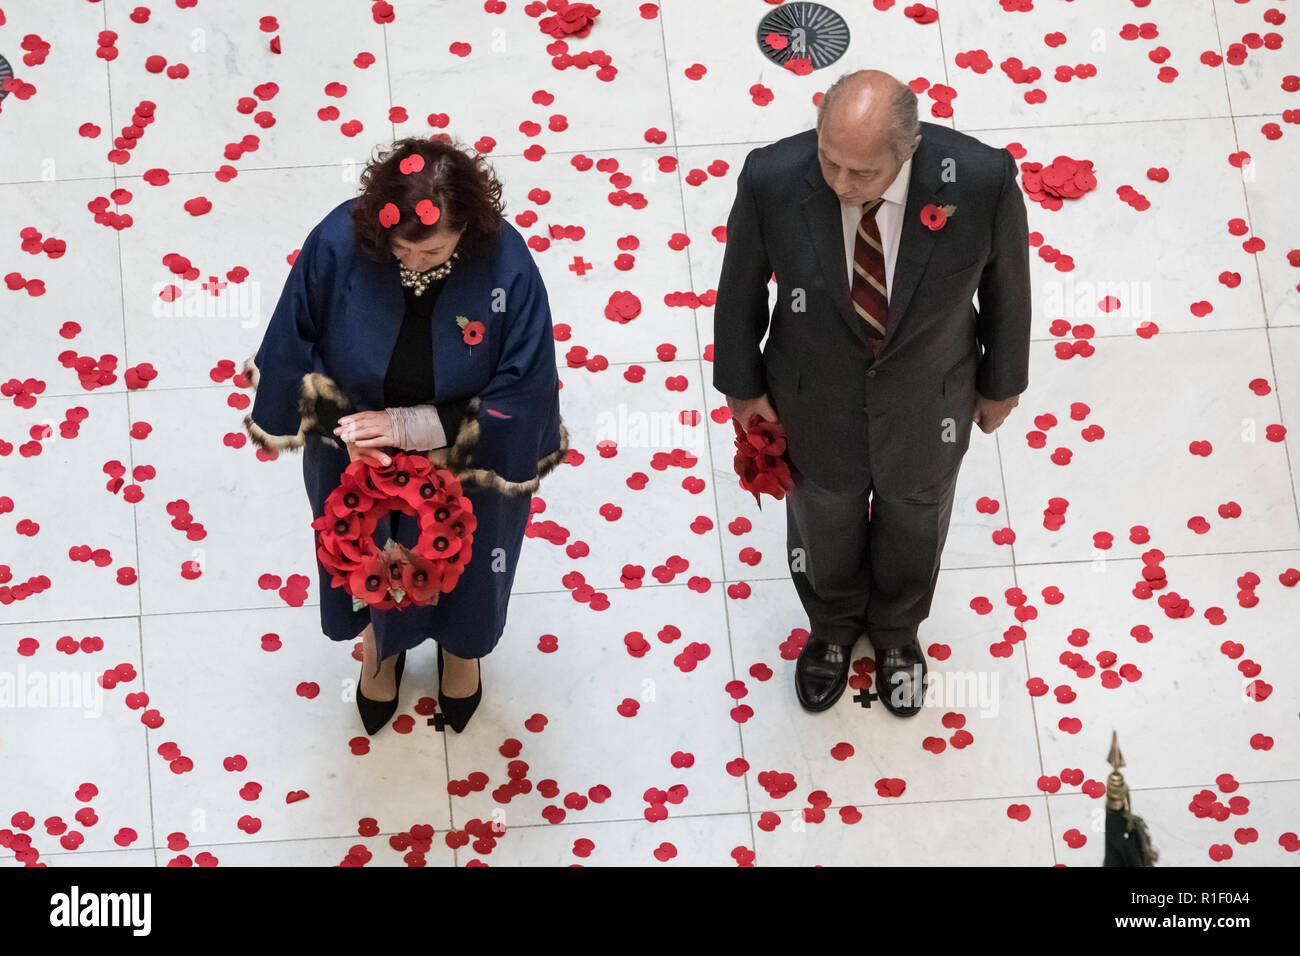 Lloyds of London Remembrance Service on Armistice Day Centenary - Stock Image